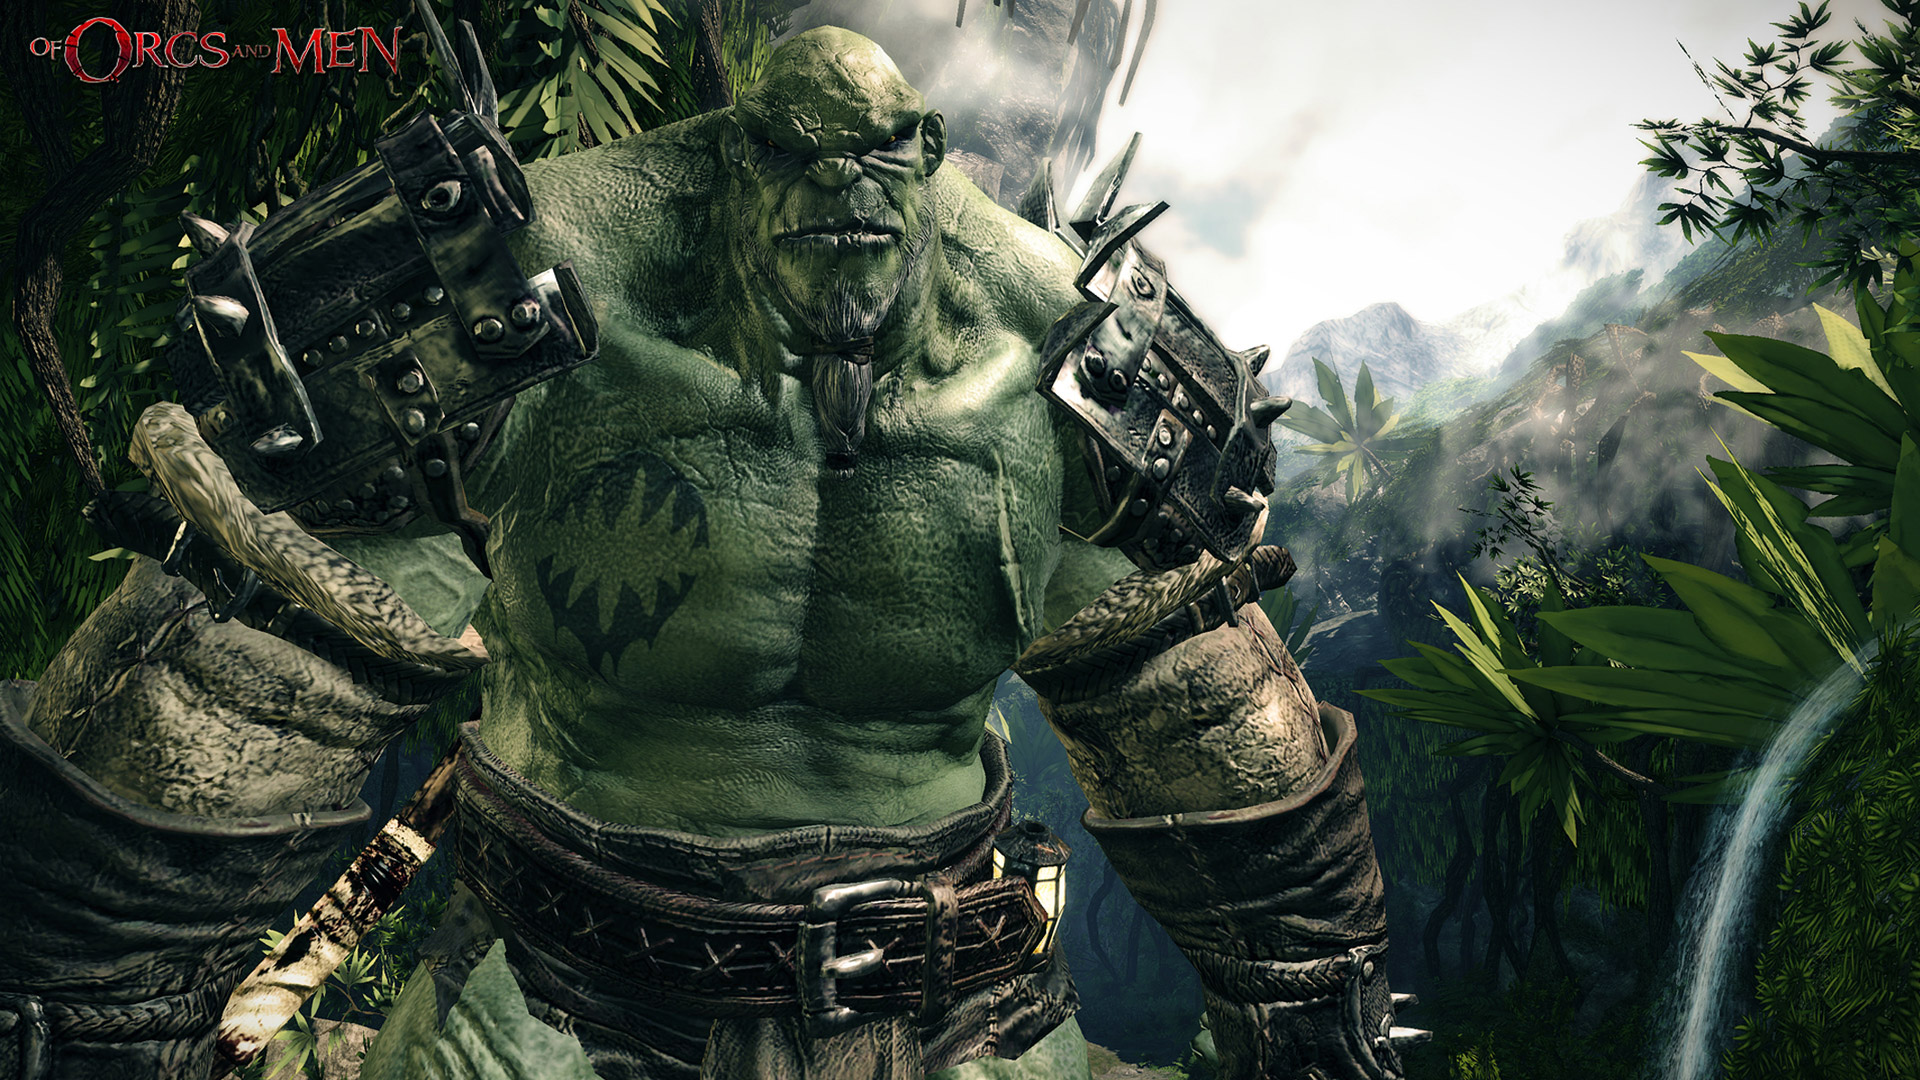 Of Orcs and Men Wallpaper in 1920x1080